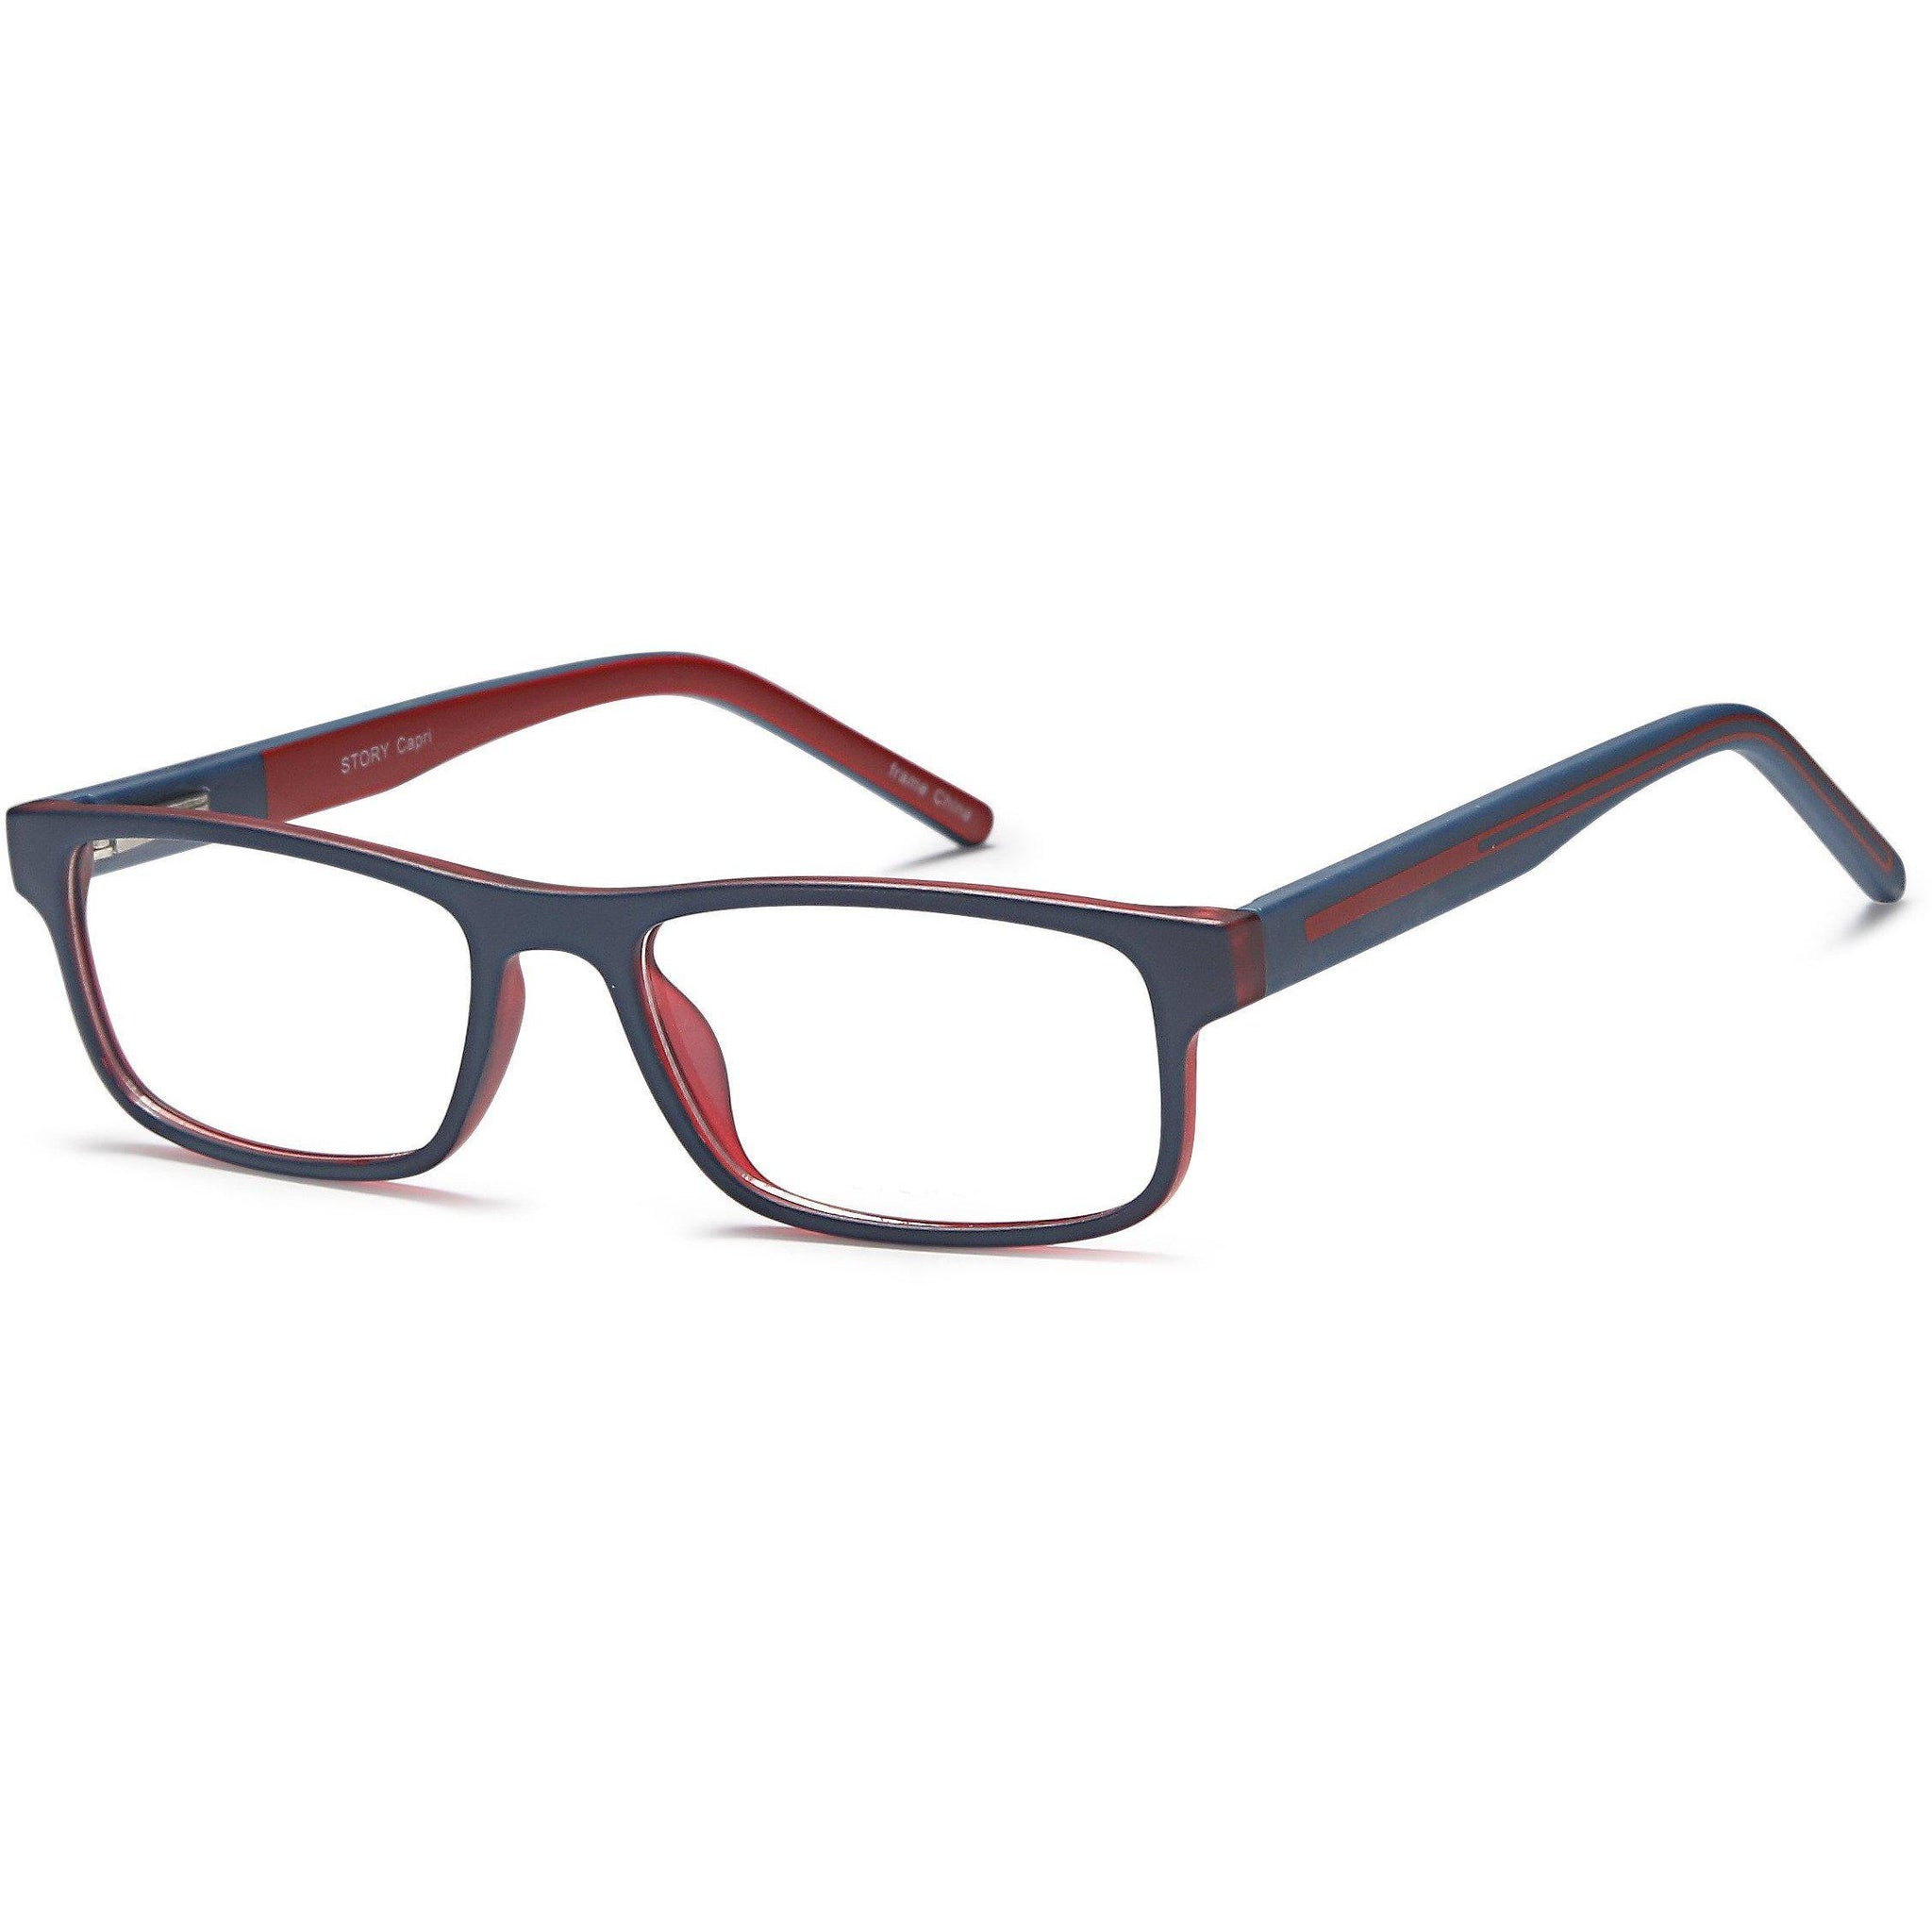 GEN Y Prescription Glasses STORY Eyeglasses Frame